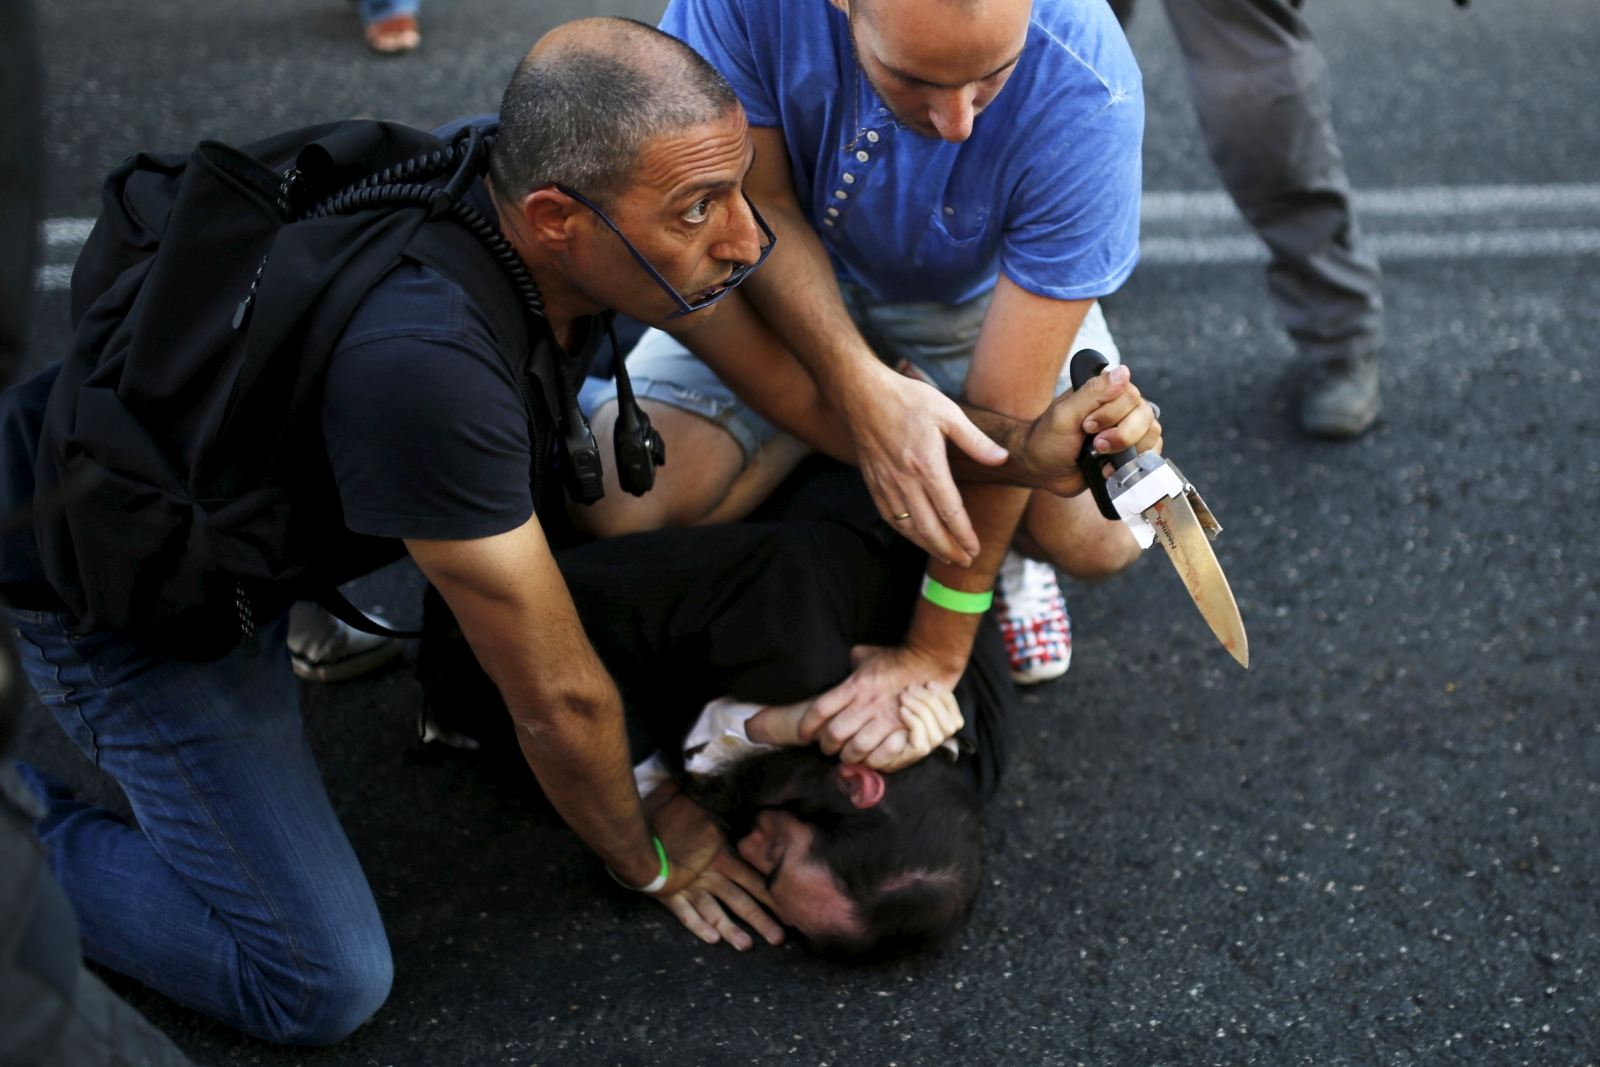 Israel gay parade attack